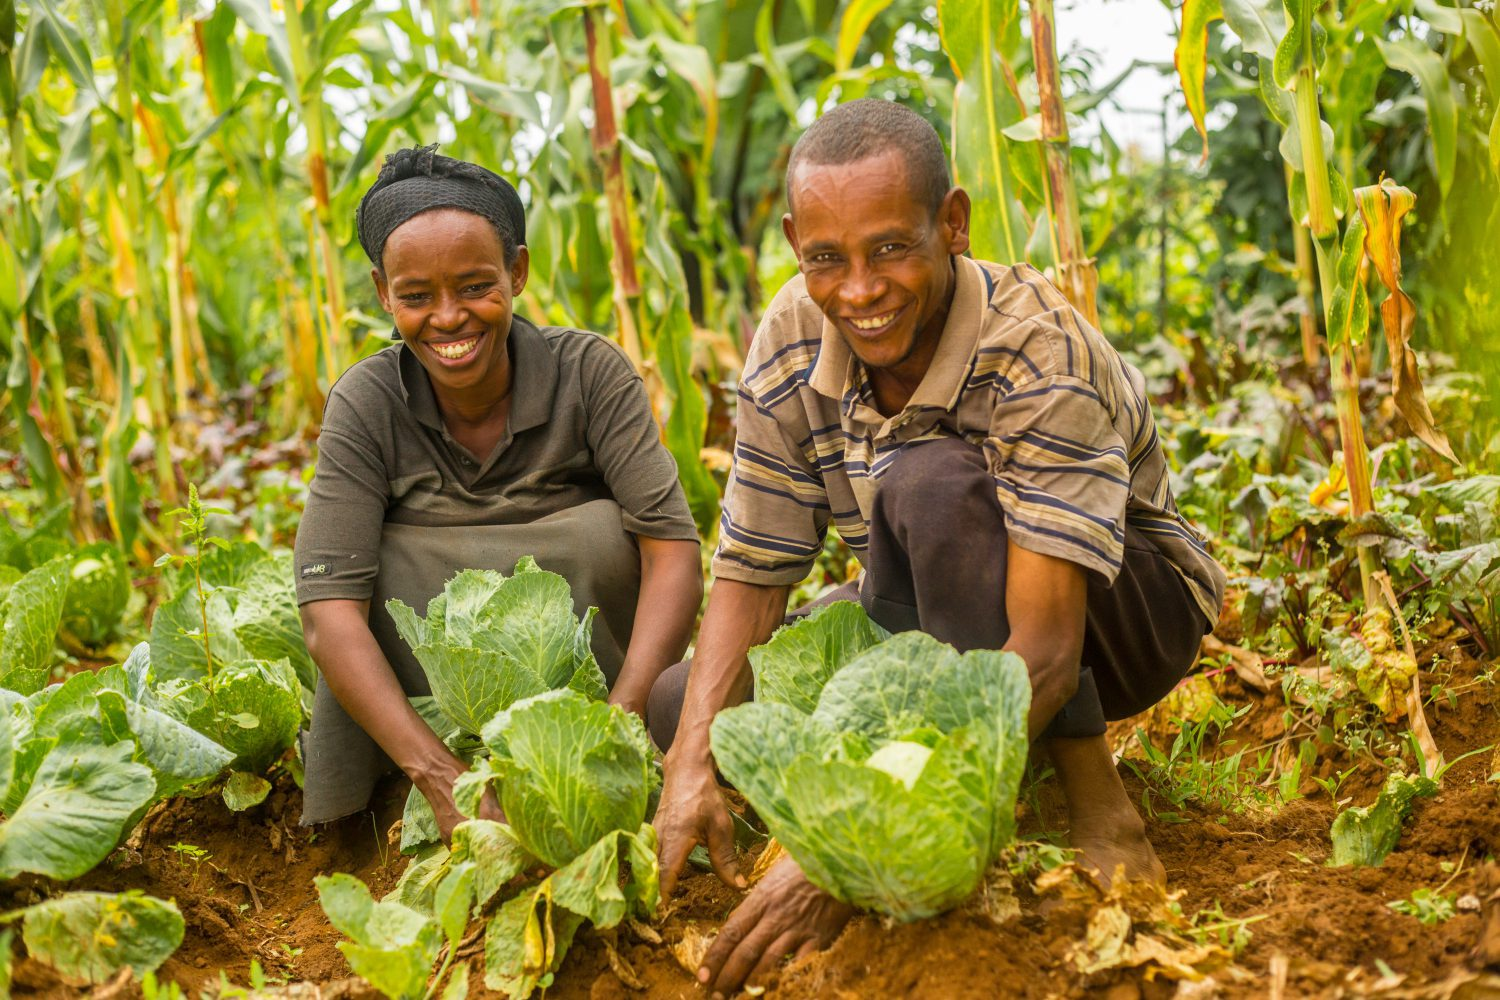 Abebe in his garden with cabbages e1533024122418